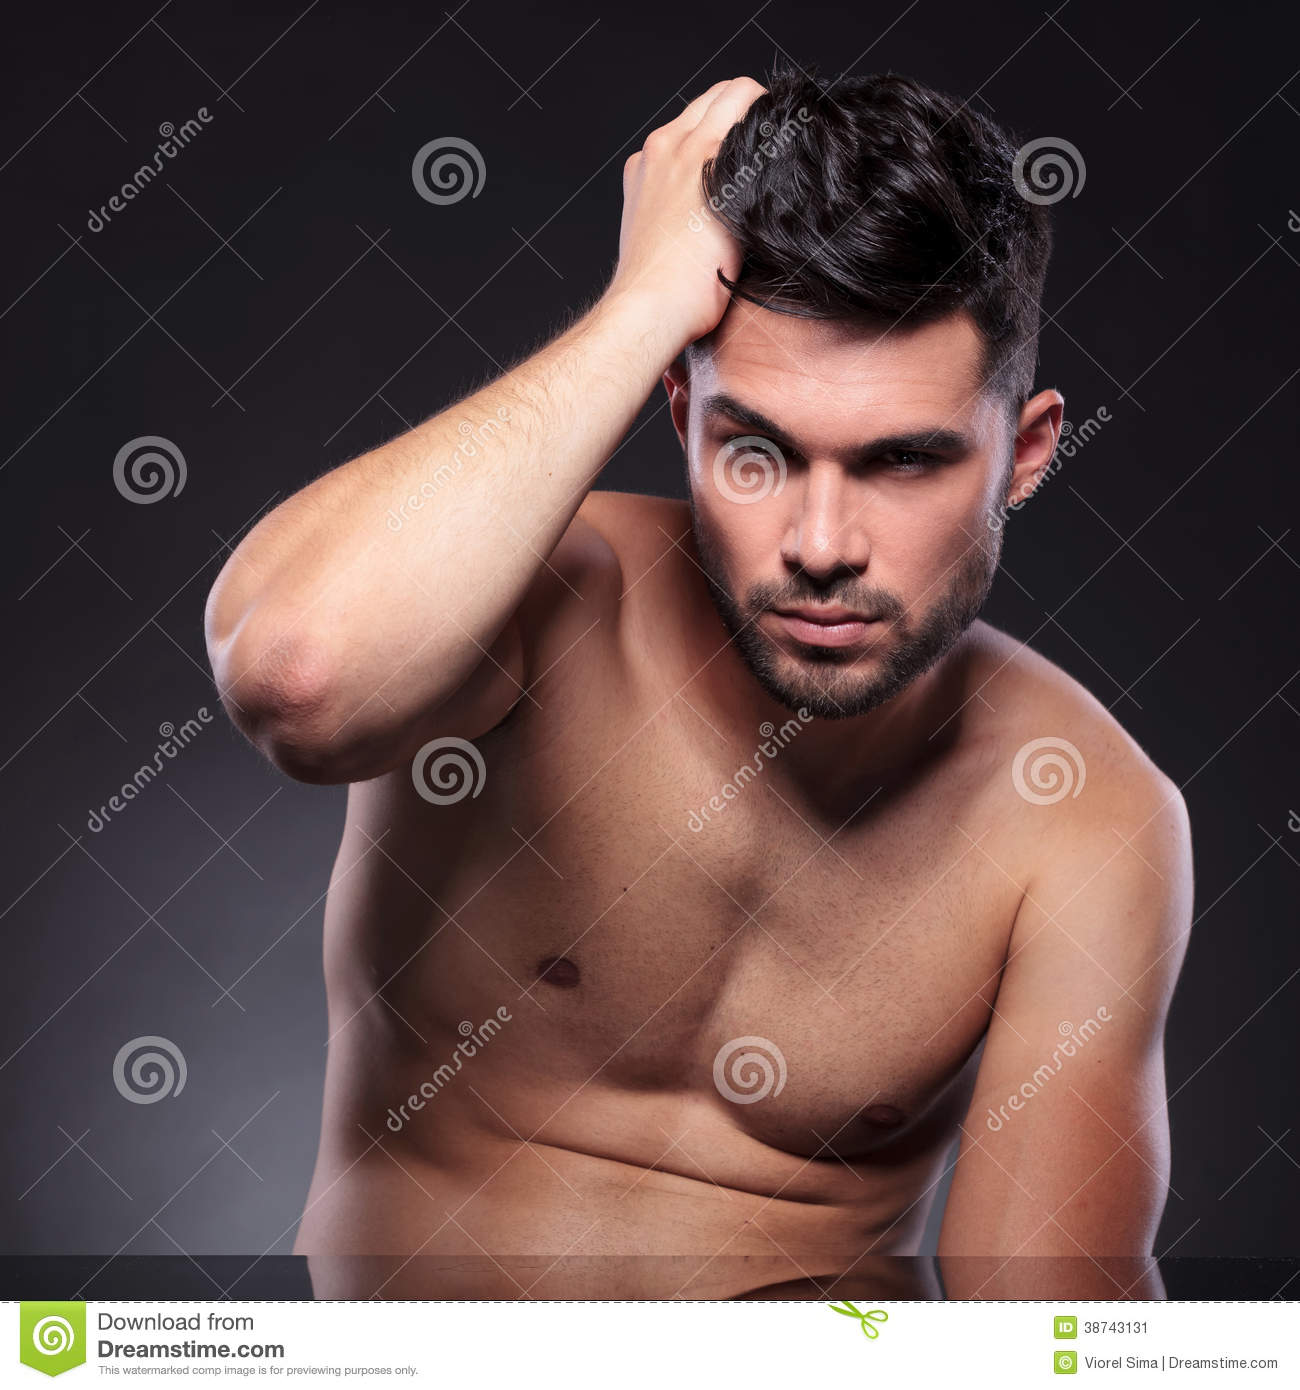 Naked young man at the desk, fixing his hair while looking into the camera.  on a black studio backgroud